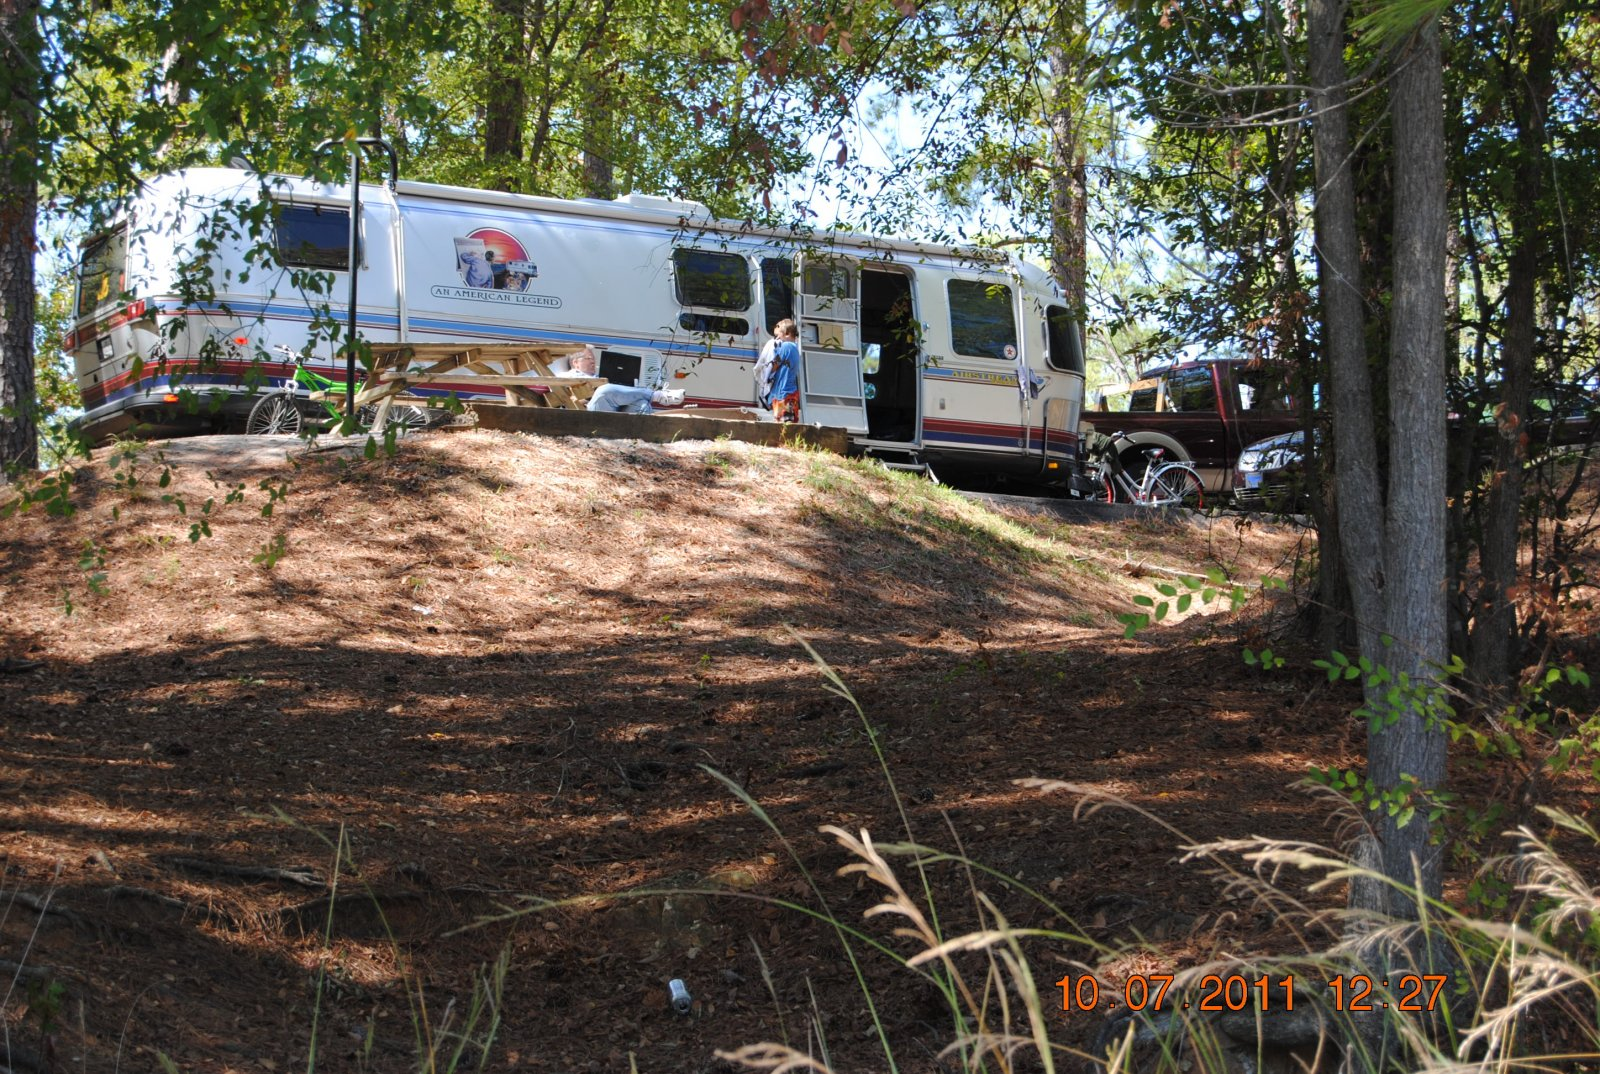 Click image for larger version  Name:Greenwood State Park SC Oct 6-9 2011 050.jpg Views:80 Size:537.2 KB ID:143900